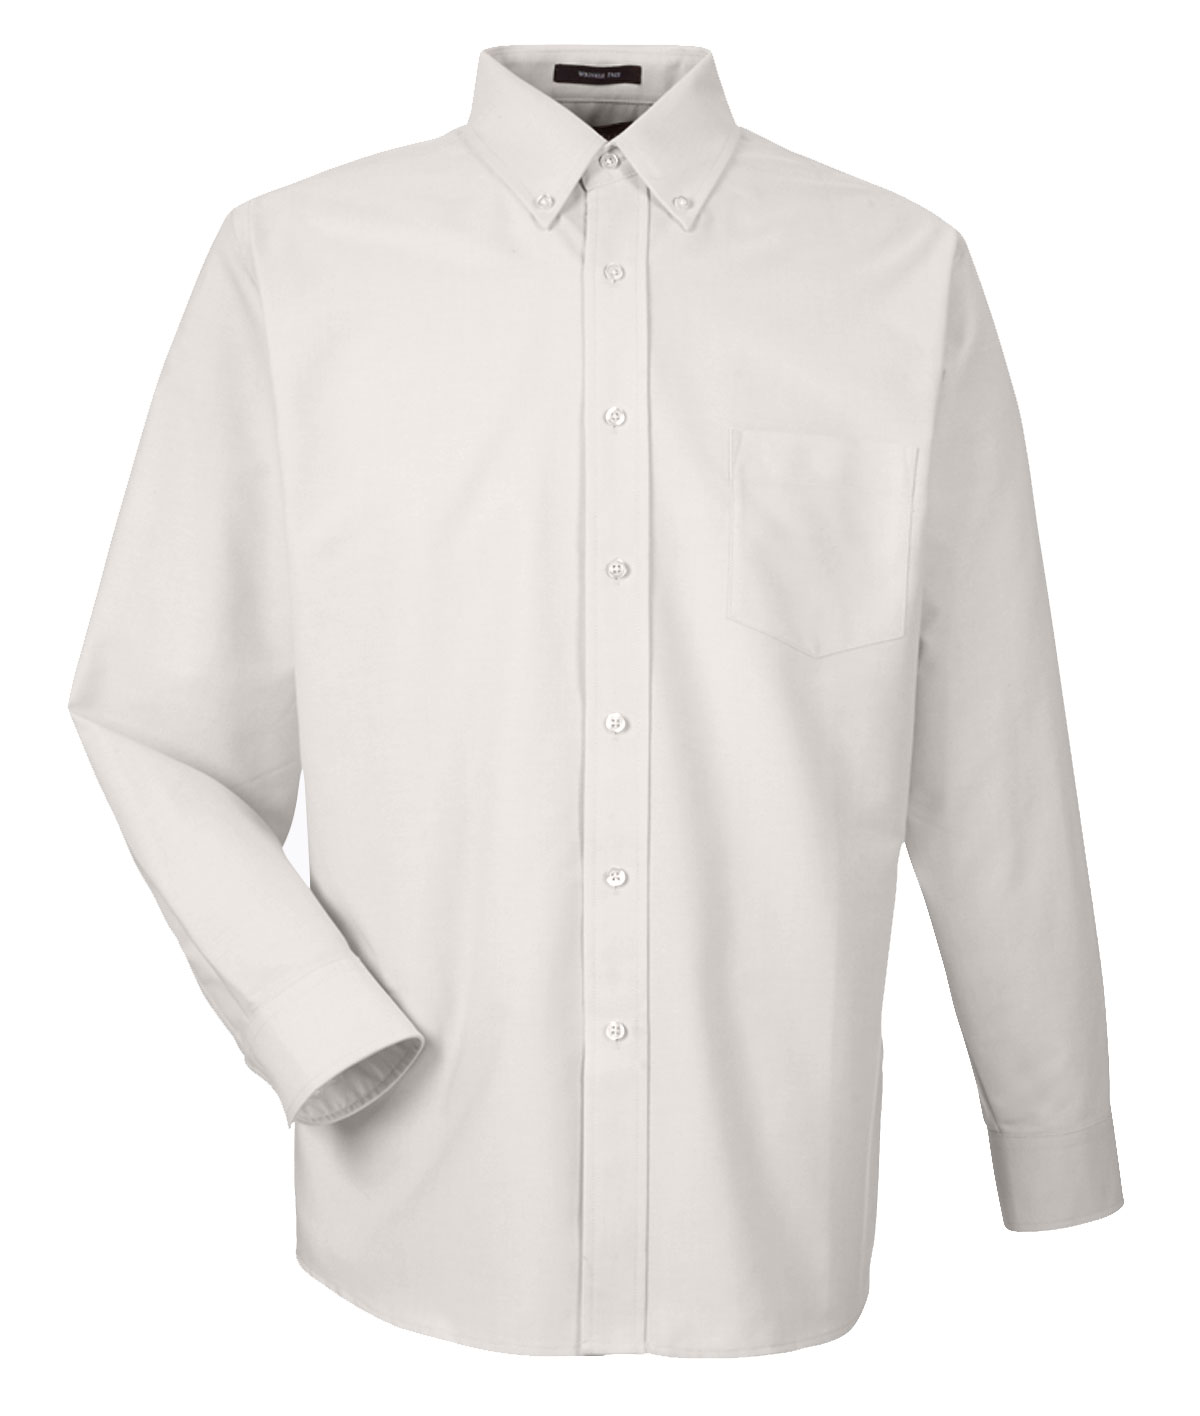 UltraClub Mens  Classic Long-Sleeve Oxford Dress Shirt